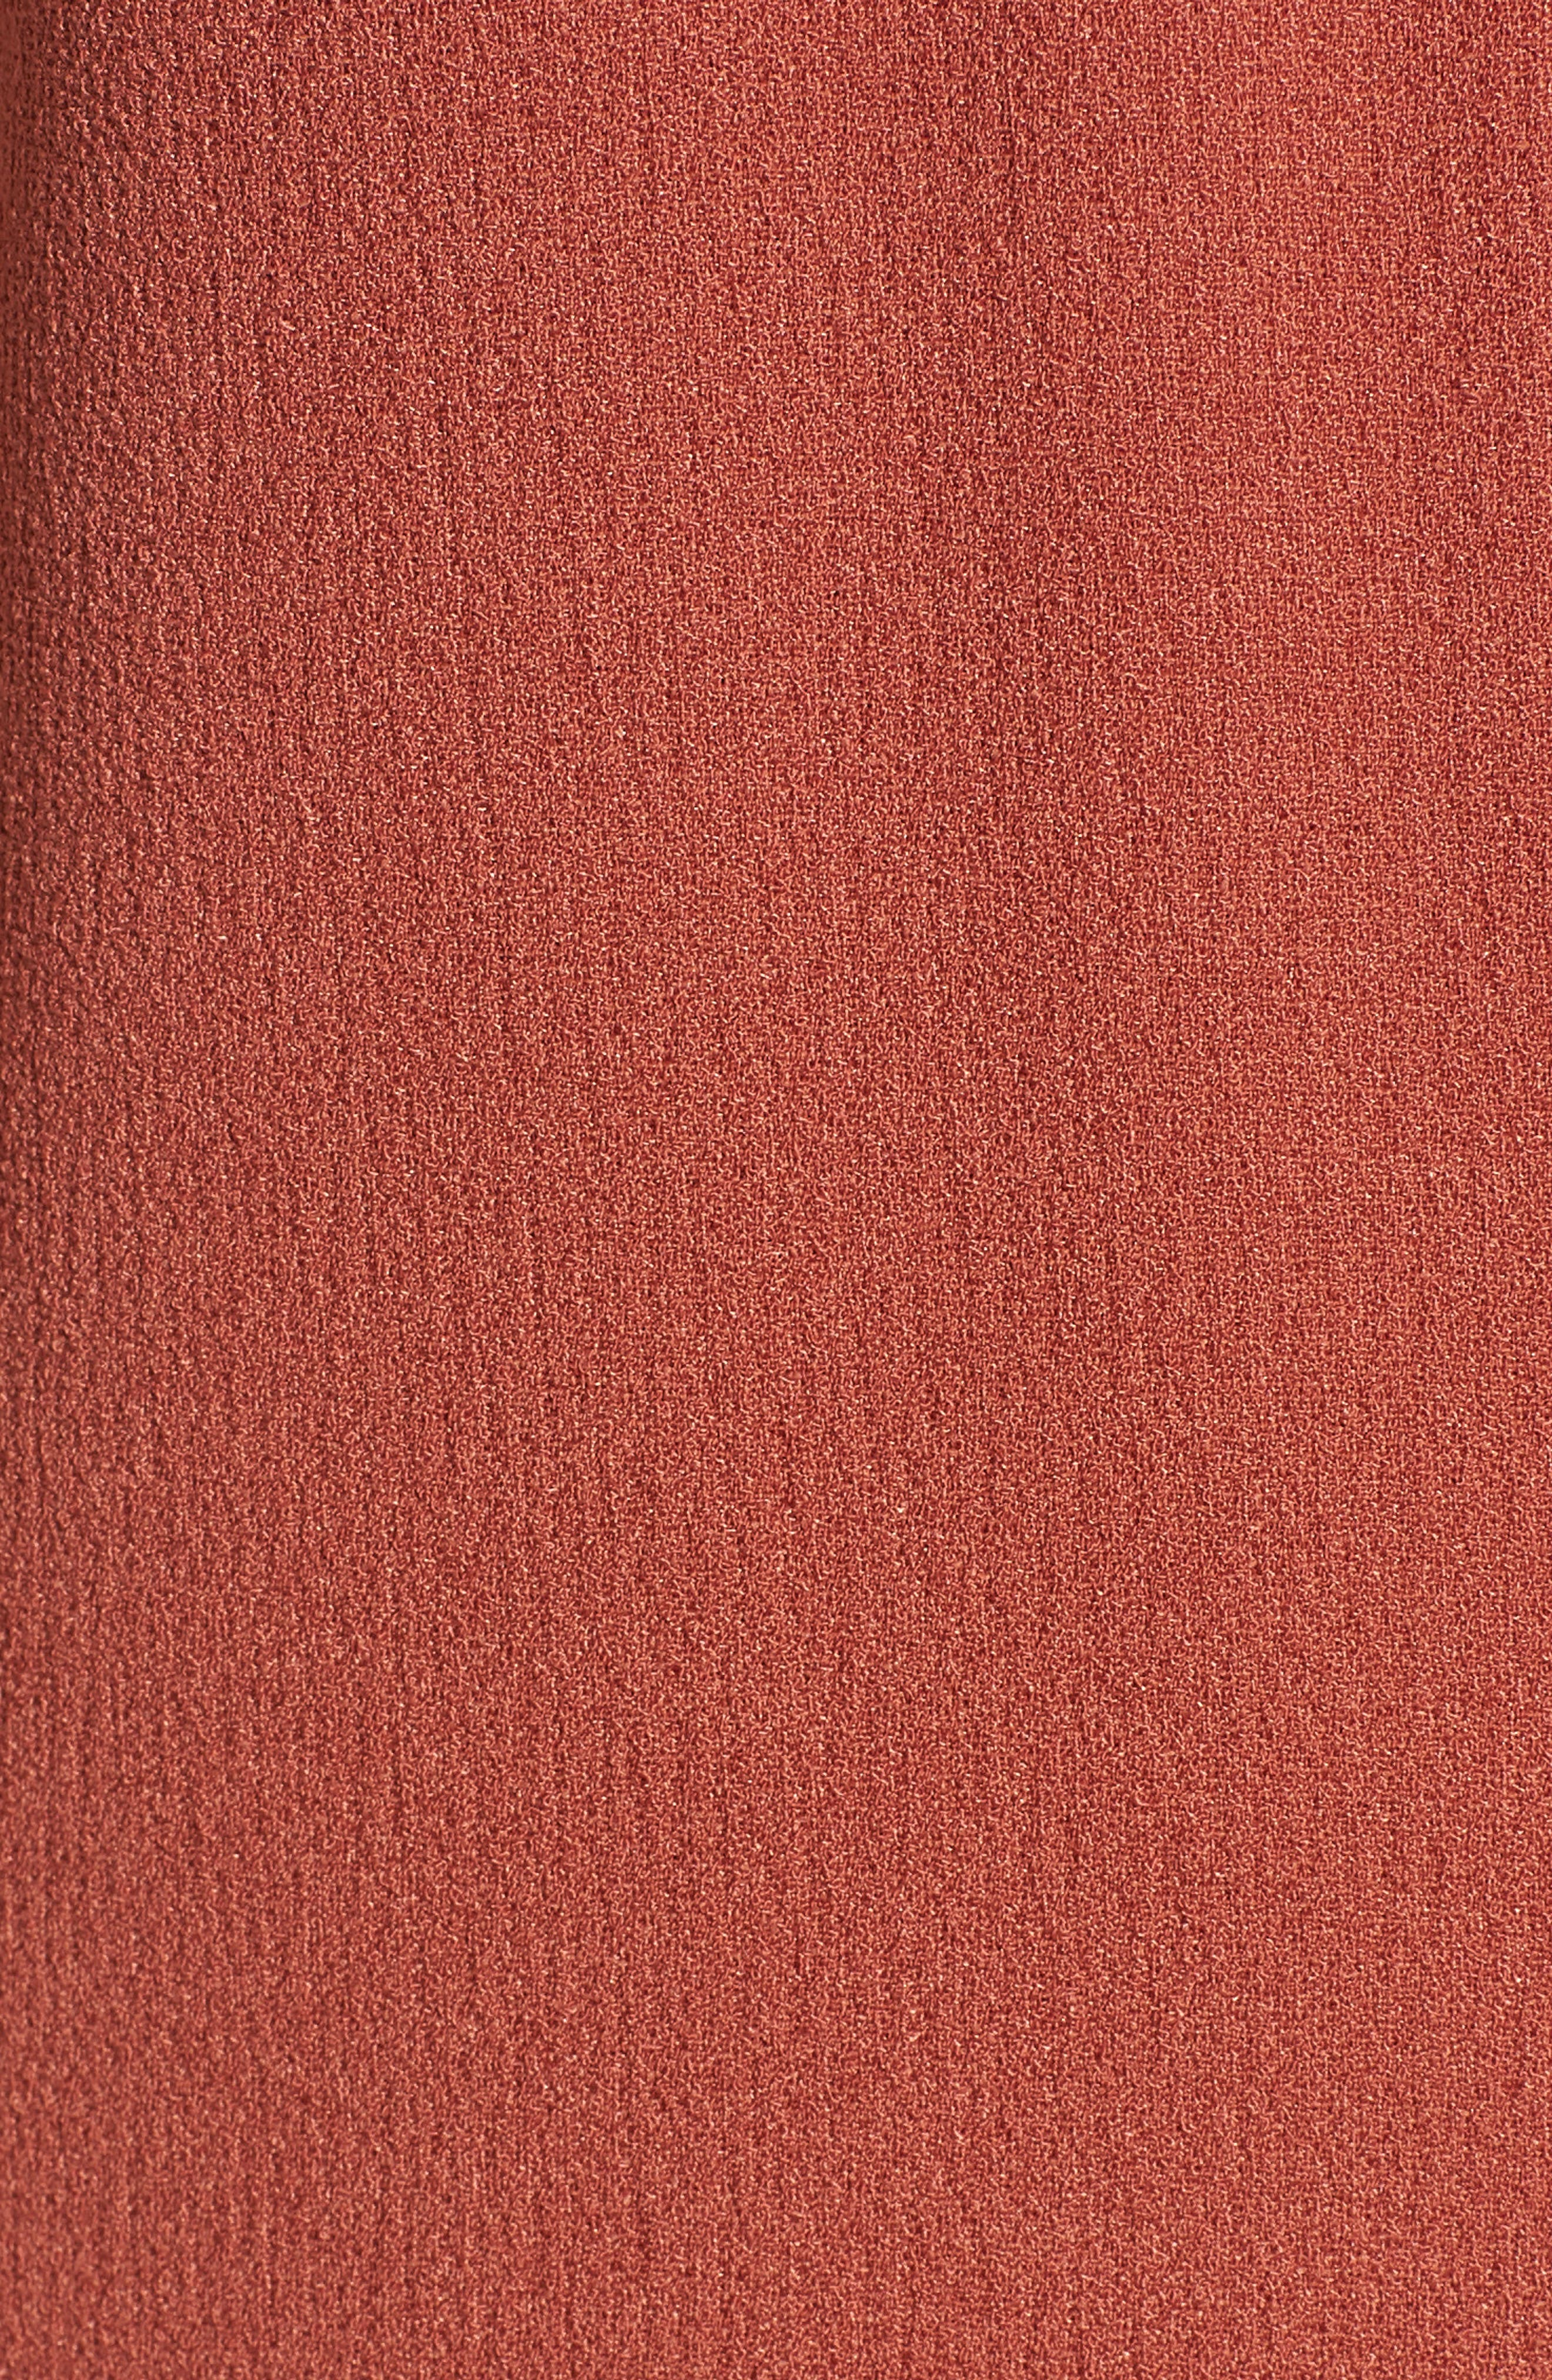 Hailey Crepe Dress,                             Alternate thumbnail 3, color,                             Rust Marsala